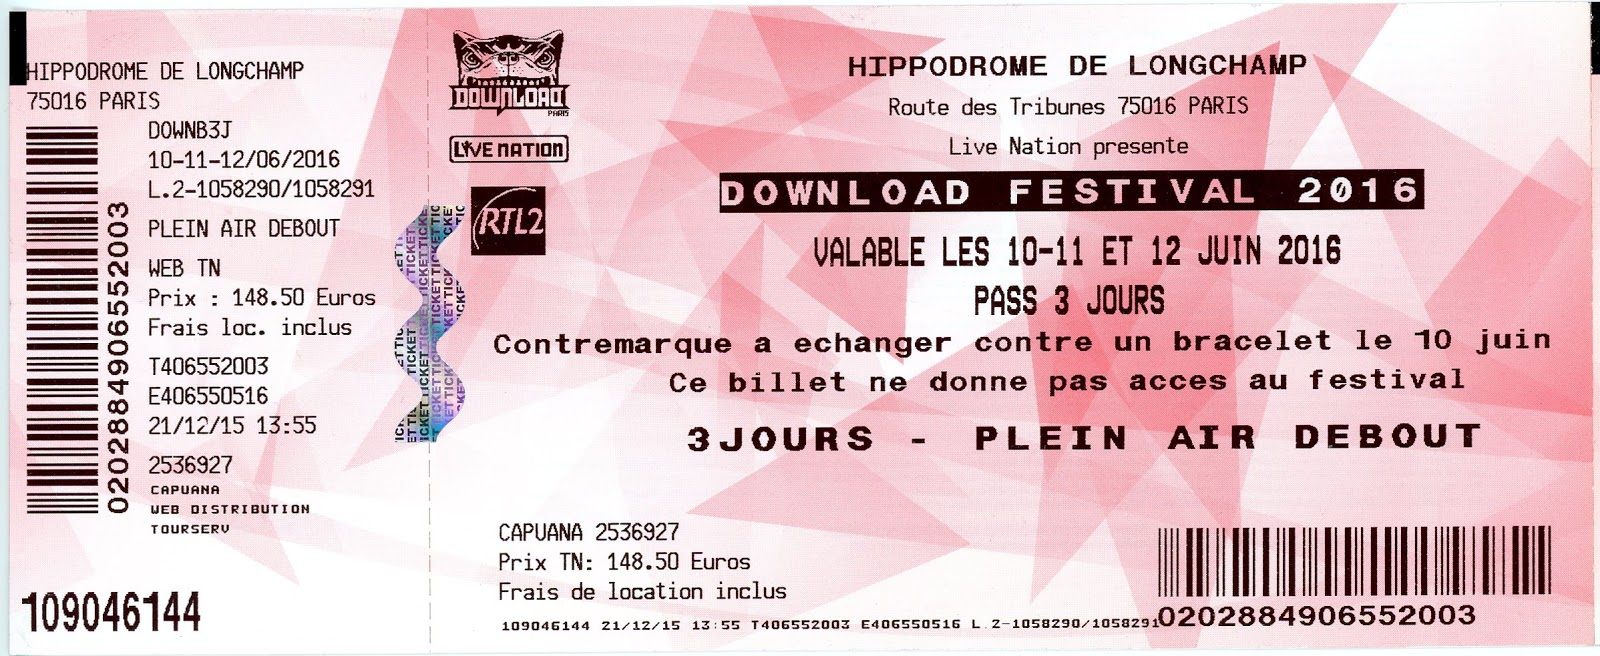 7acdf97ae ... BACK TO THE OLD CONCERTS ~~~~~: DOWNLOAD 2016: RAMMSTEIN - VOLBEAT -  SABATON - MEGADETH - NEW YEARS DAY - ... - ~ L'Hippodrome de Longchamp.  Paris